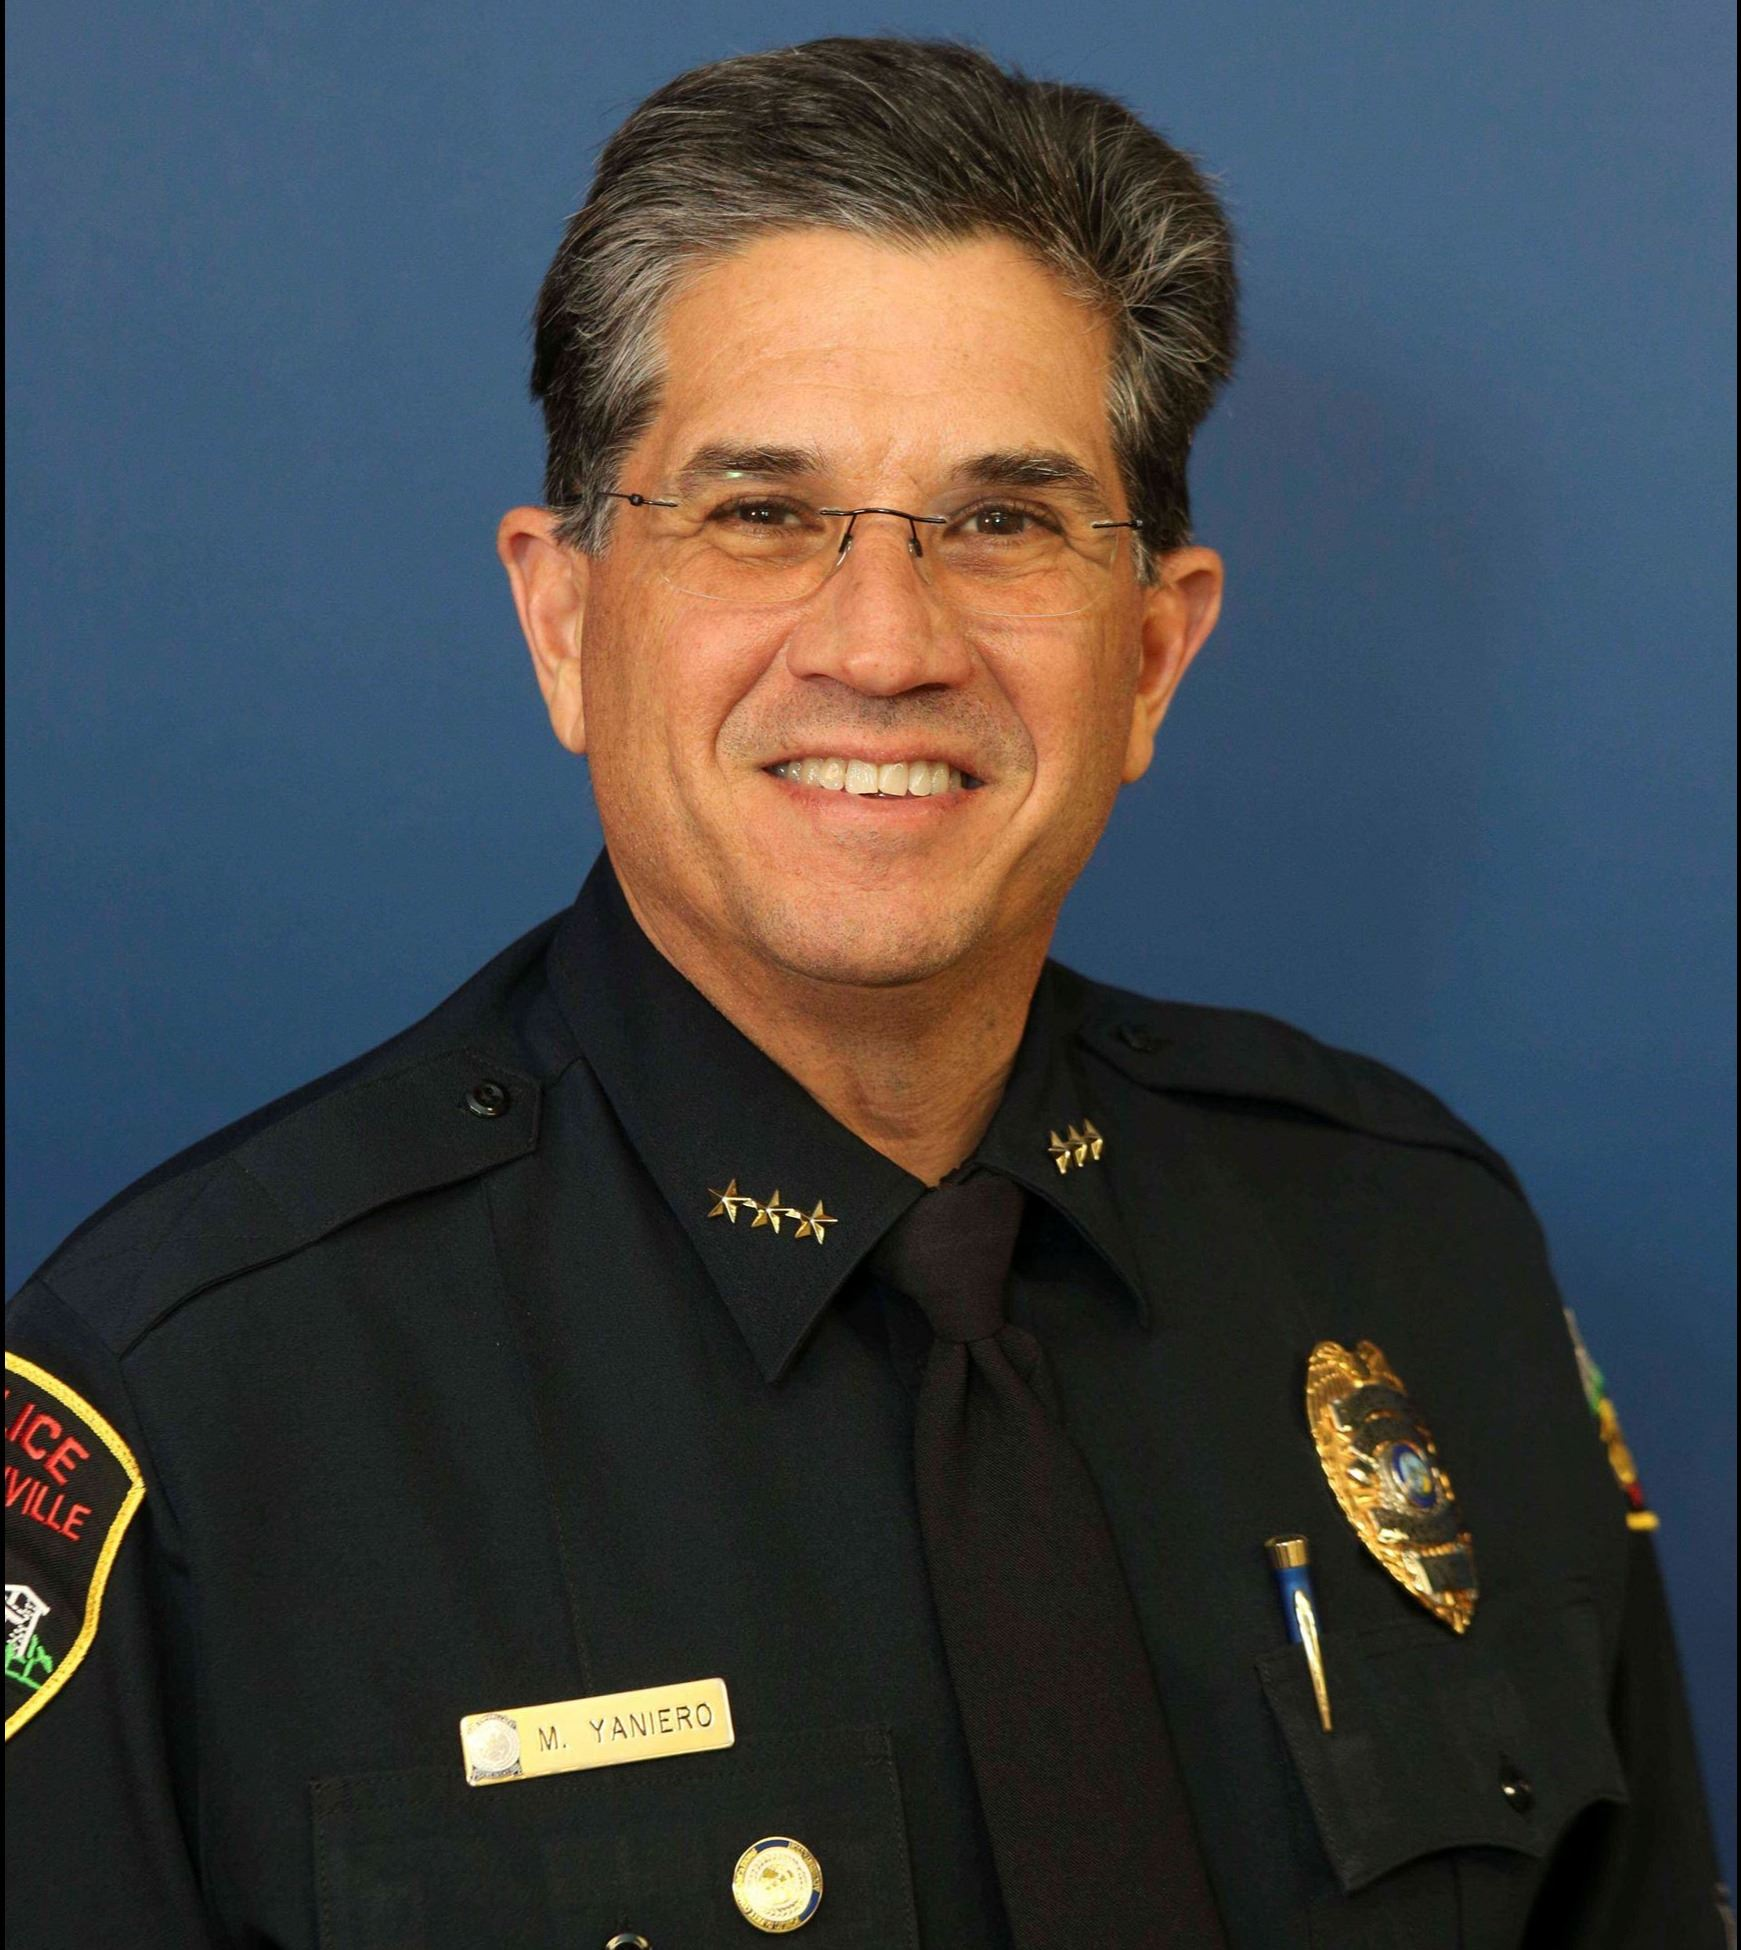 Mike Yaniero, Director of Public Safety